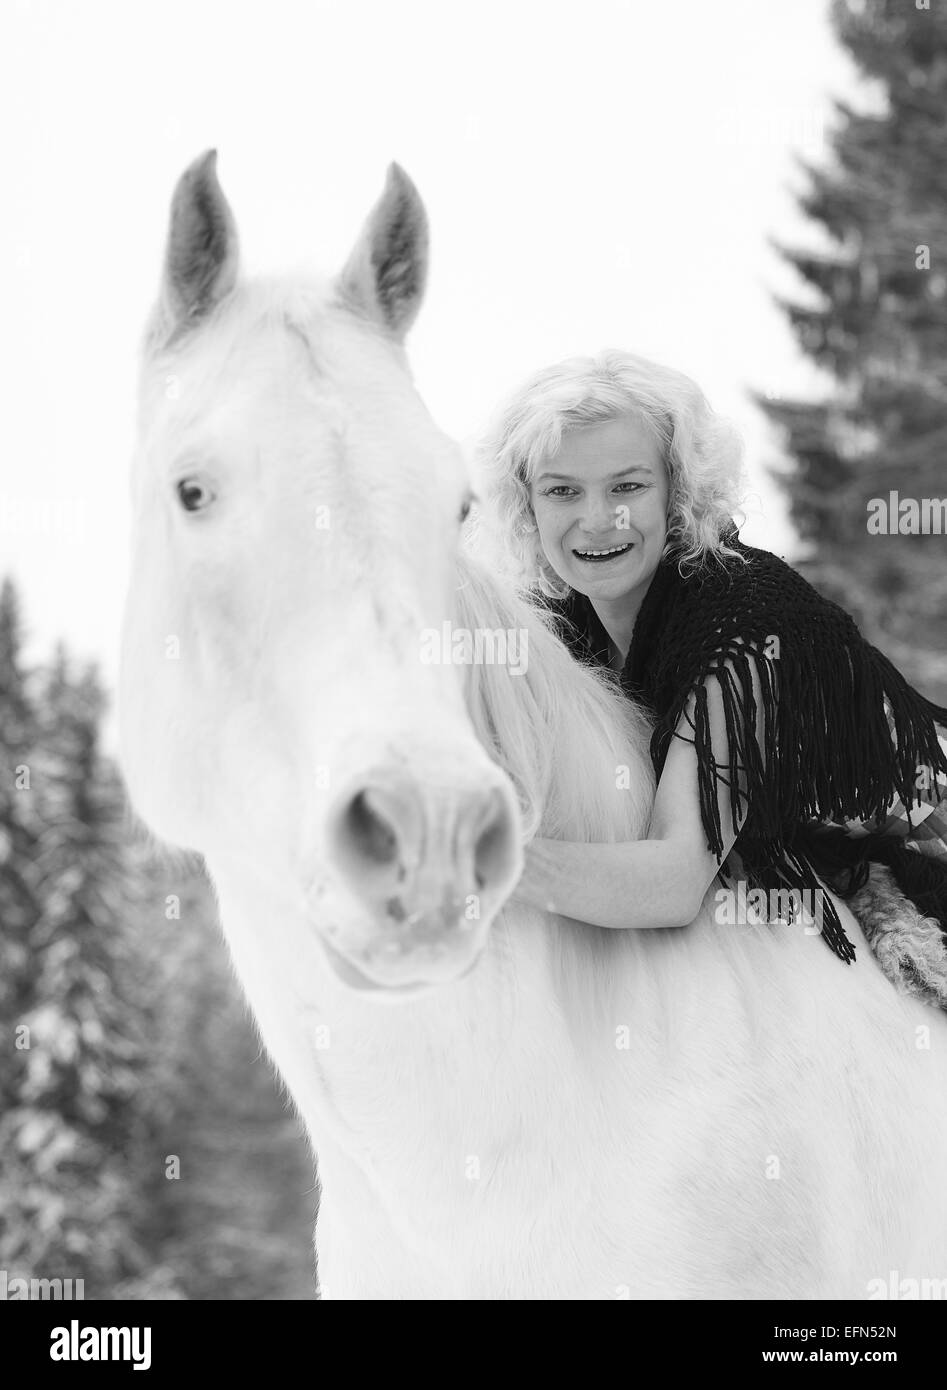 Attractive blond woman hugs a white horse, overcast winter day - Stock Image